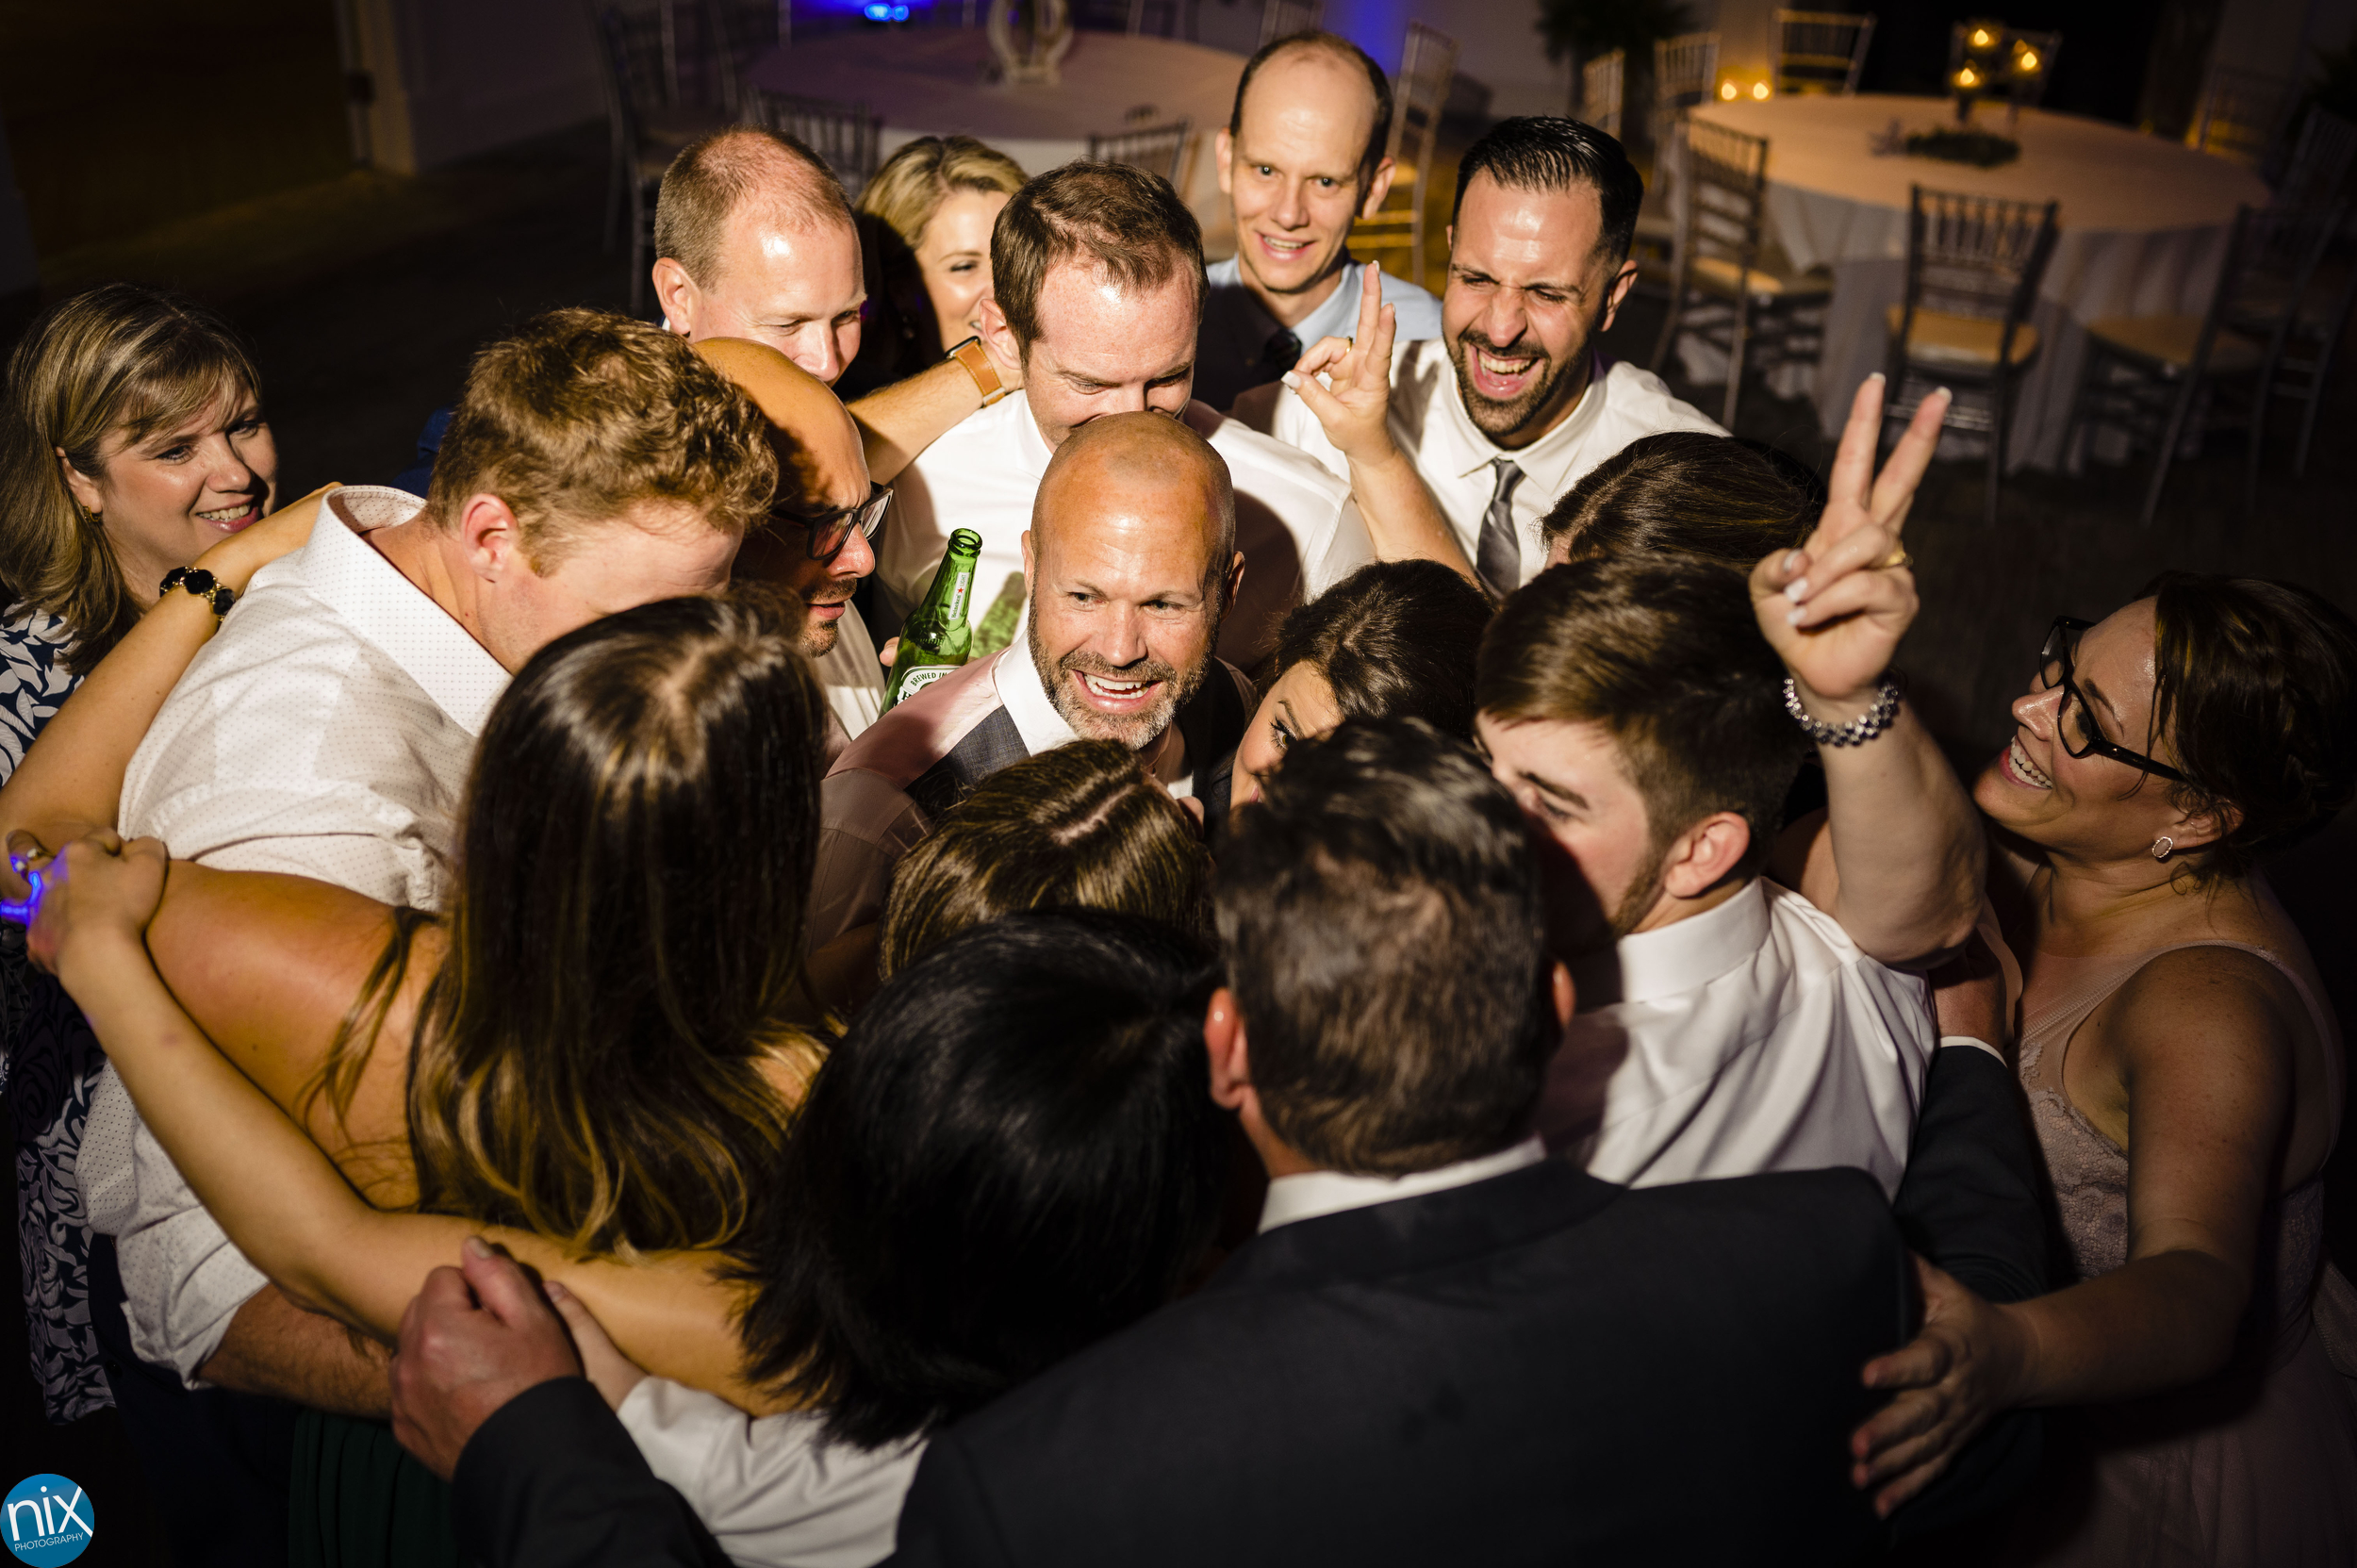 groom surrounded by friends at wedding reception